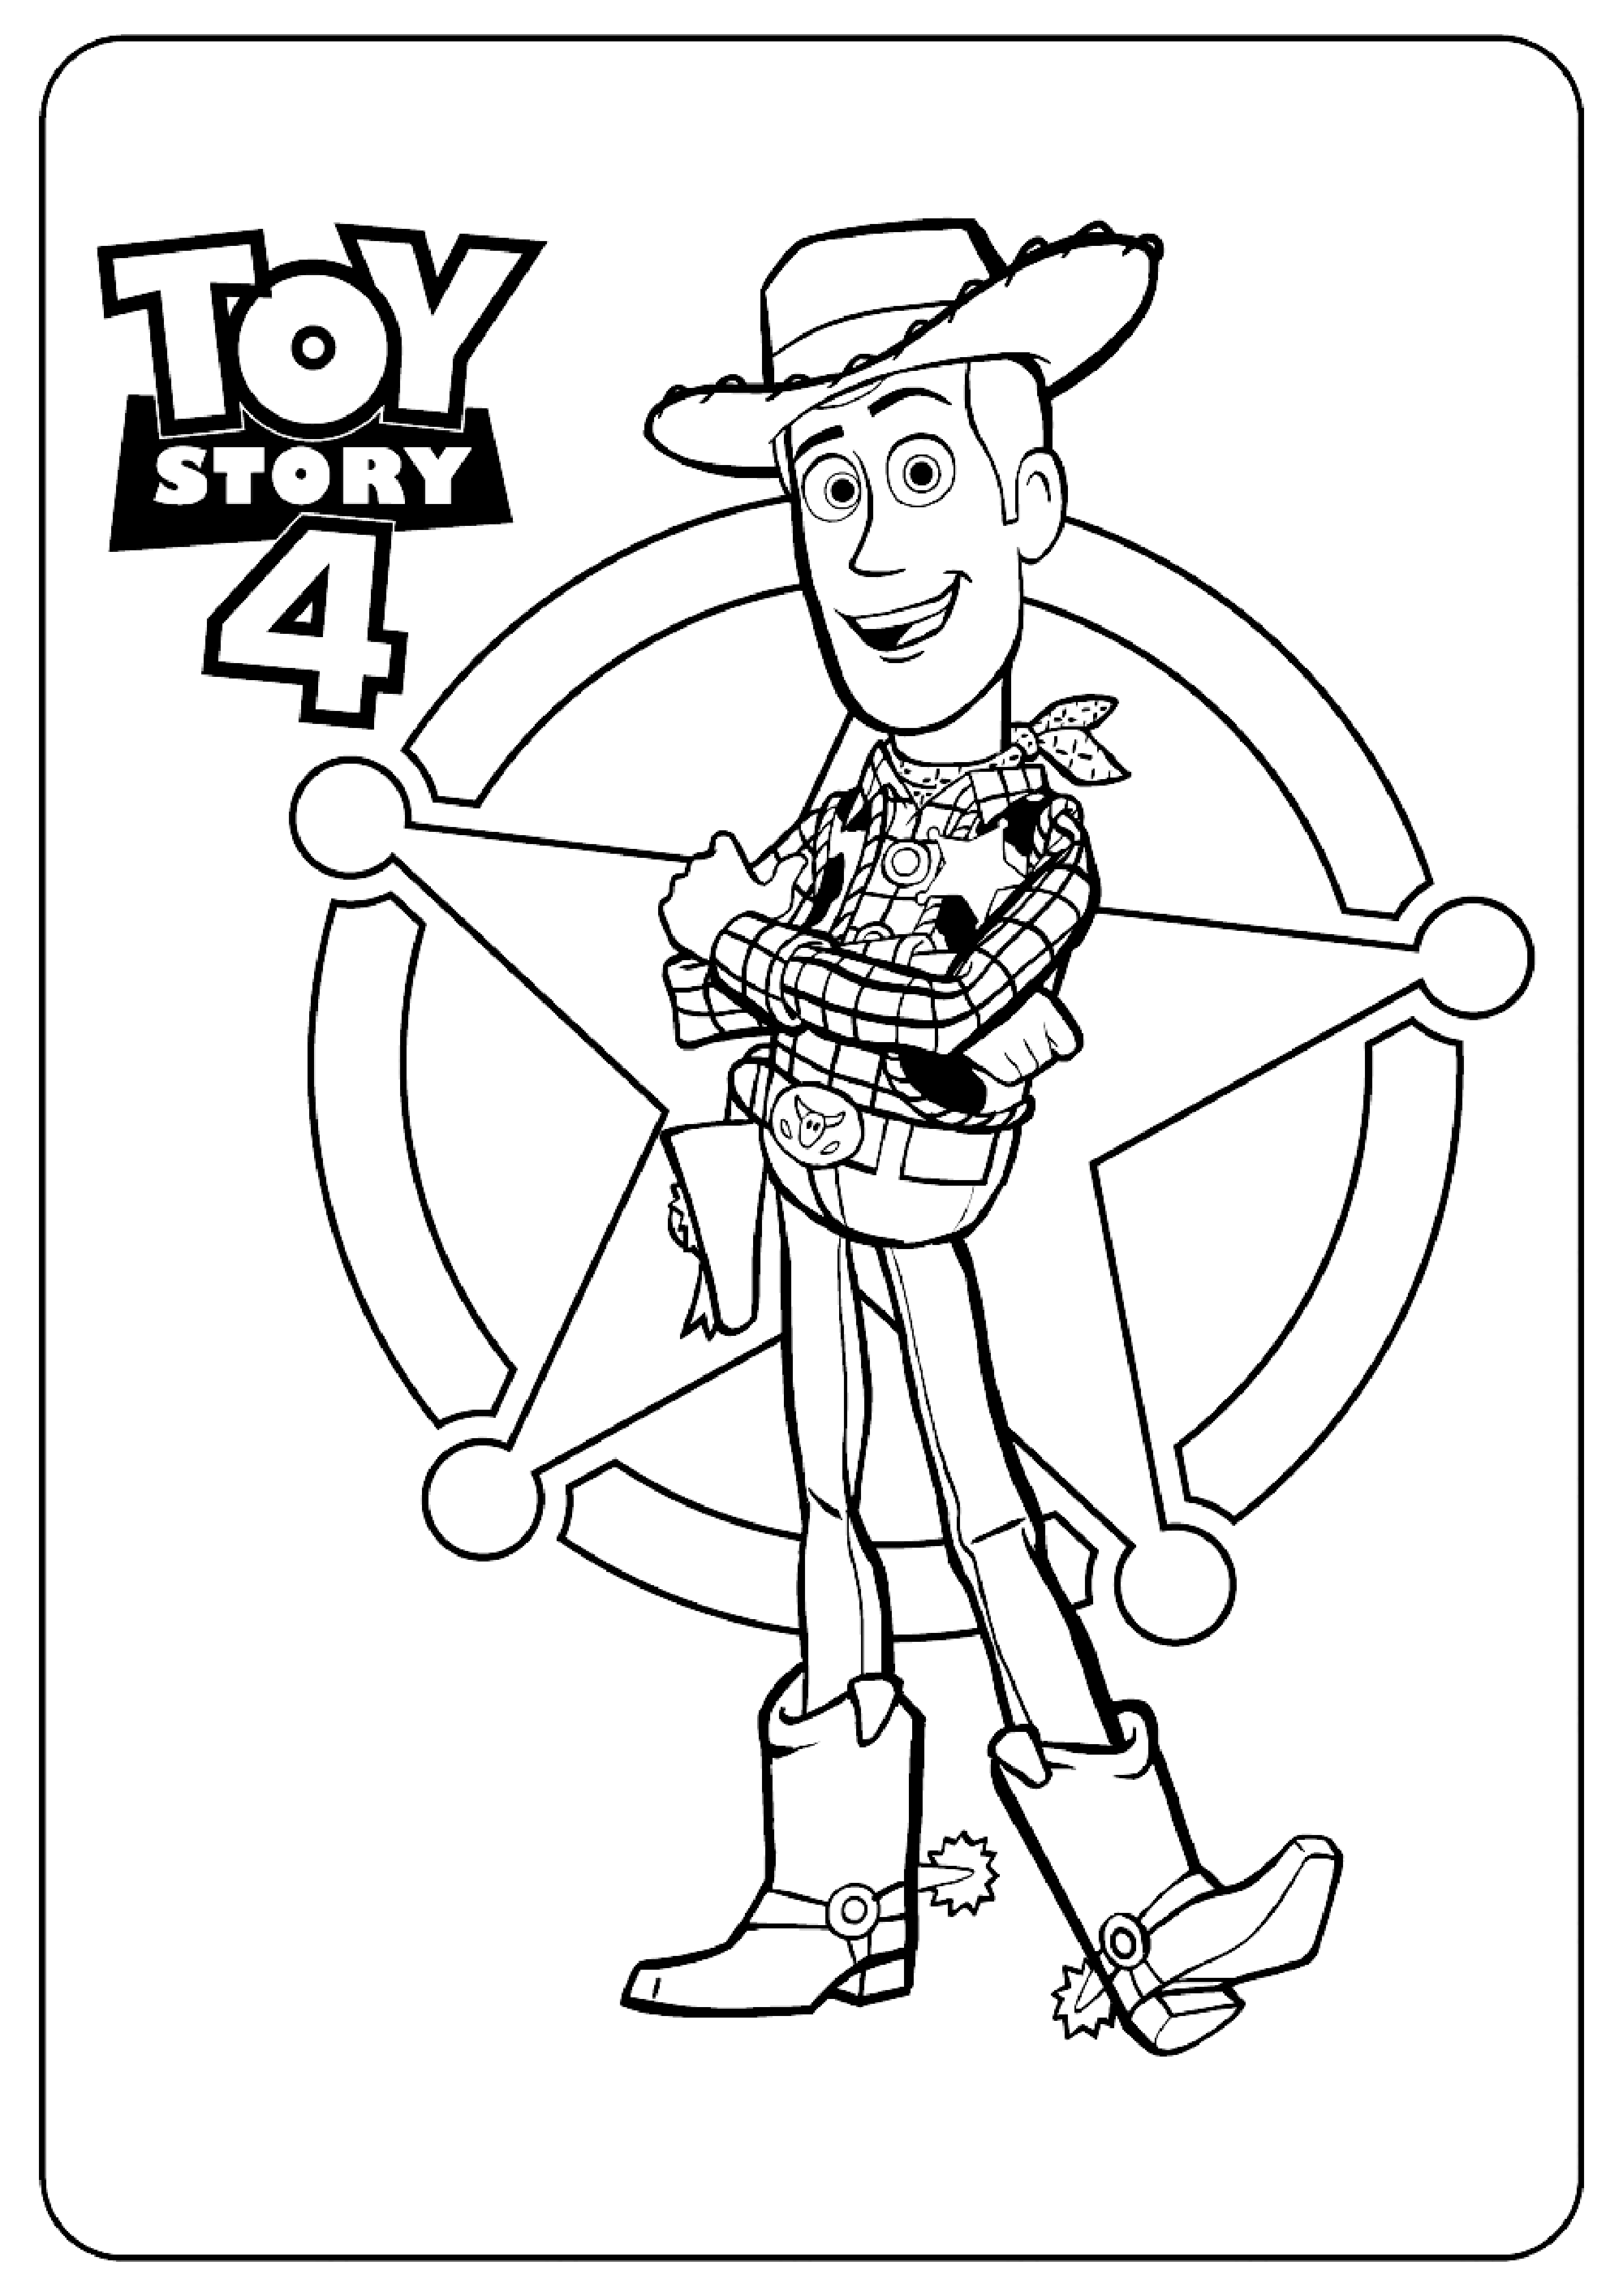 woody face coloring page toy story woody coloring pages coloring home coloring page woody face